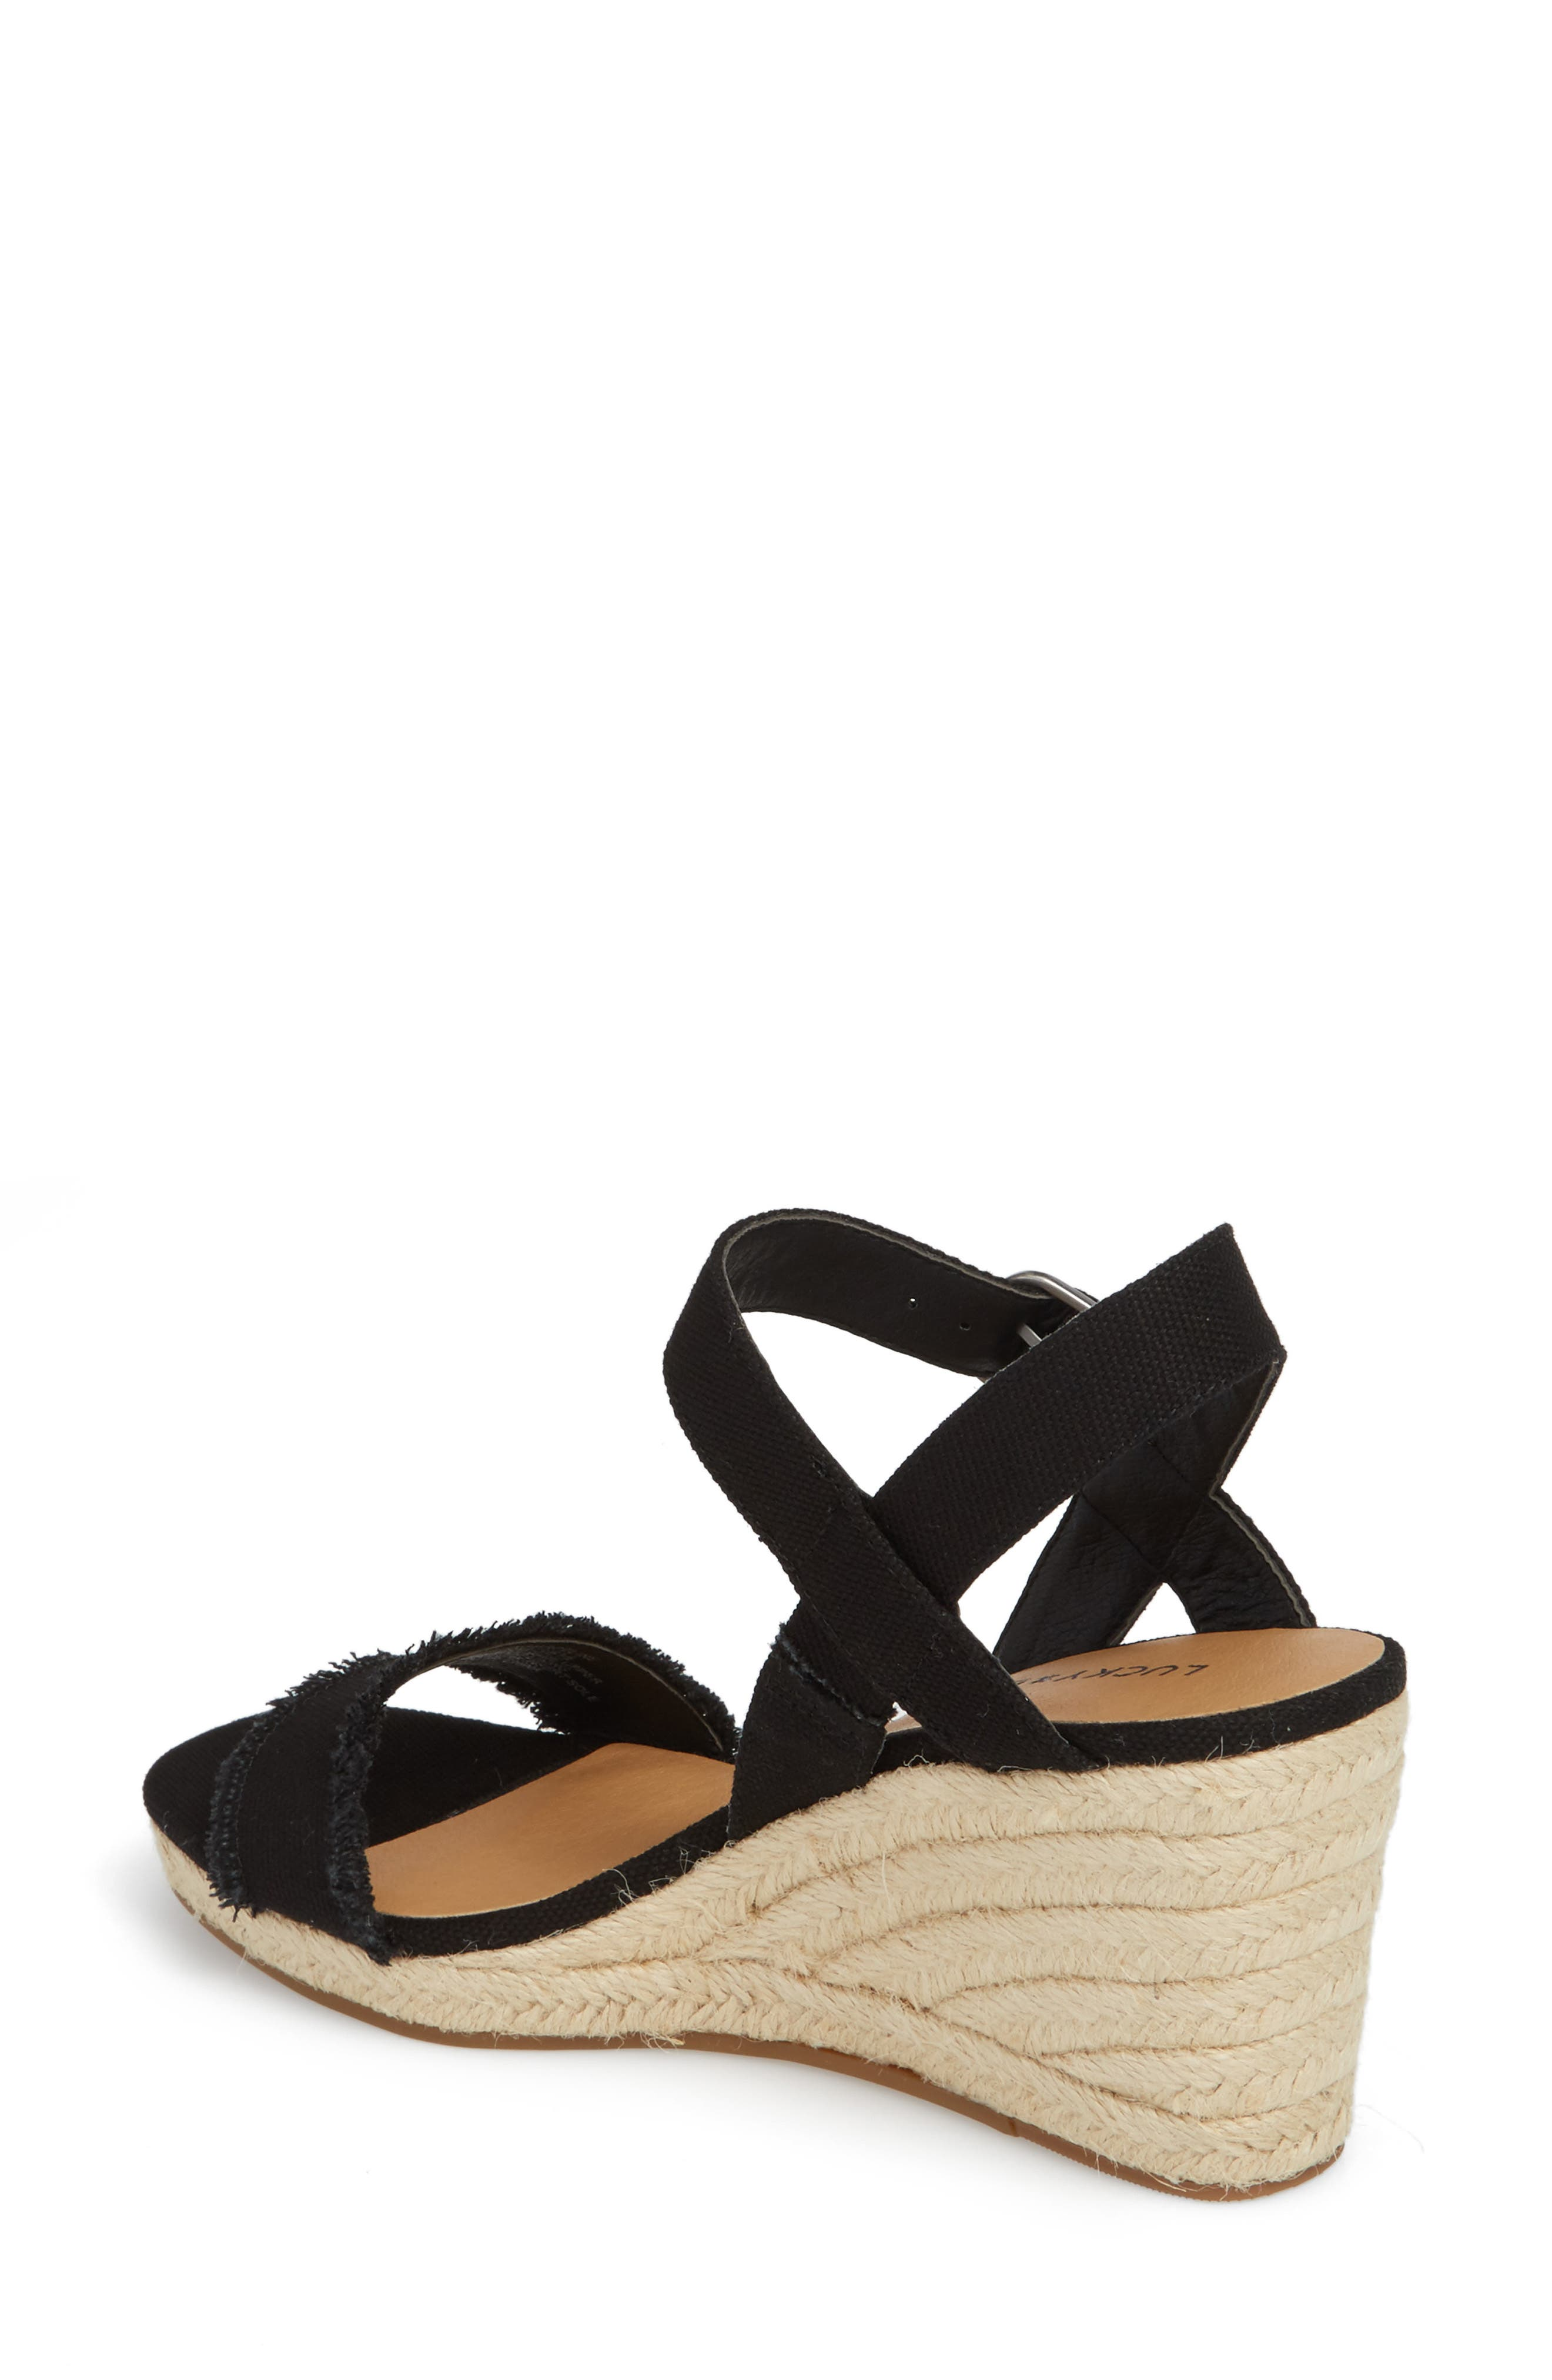 Marceline Squared Toe Wedge Sandal,                             Alternate thumbnail 2, color,                             001